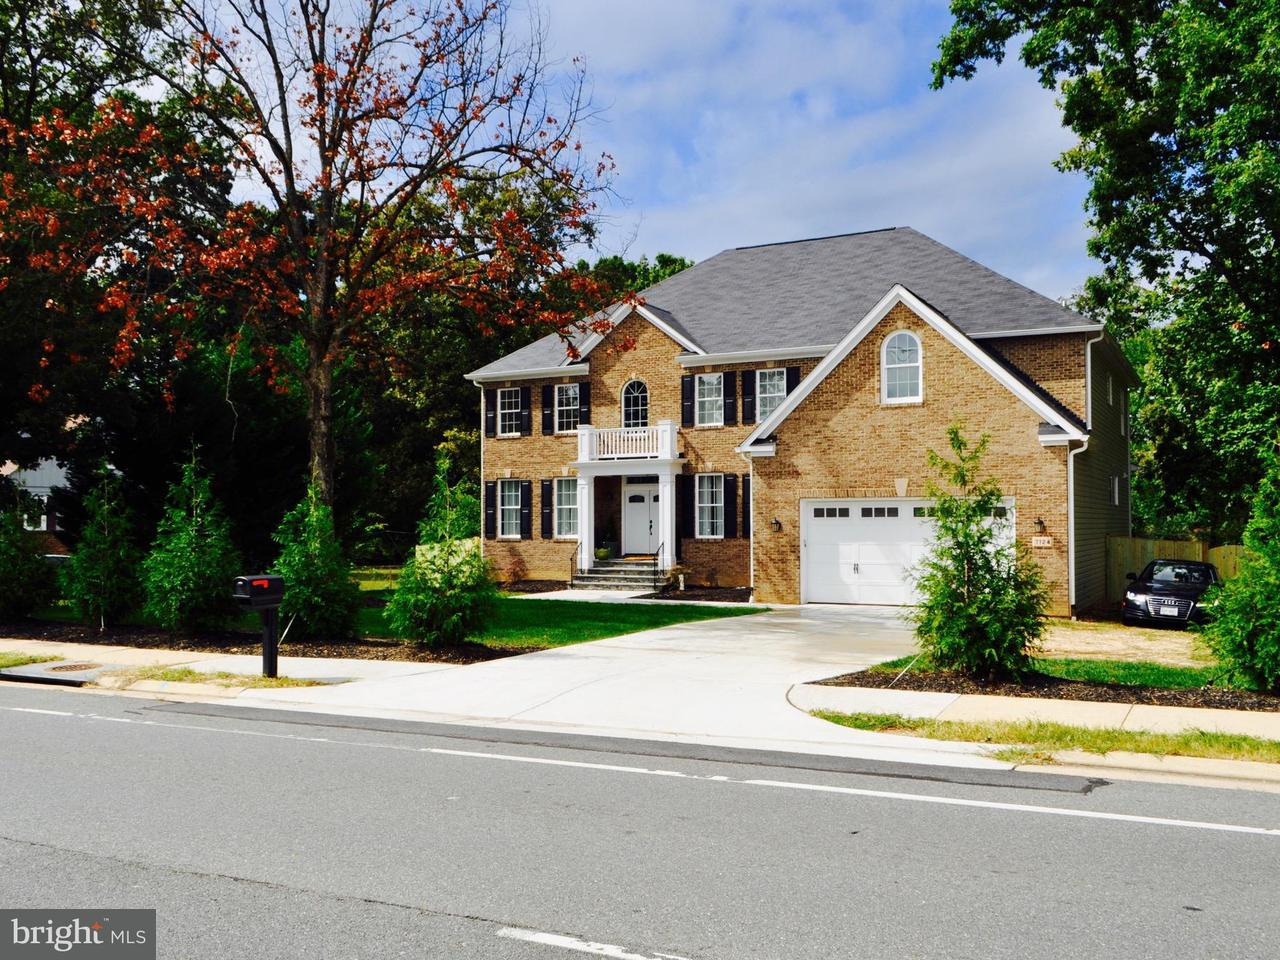 Single Family Home for Sale at 7225 GORMEL Drive 7225 GORMEL Drive Springfield, Virginia 22150 United States